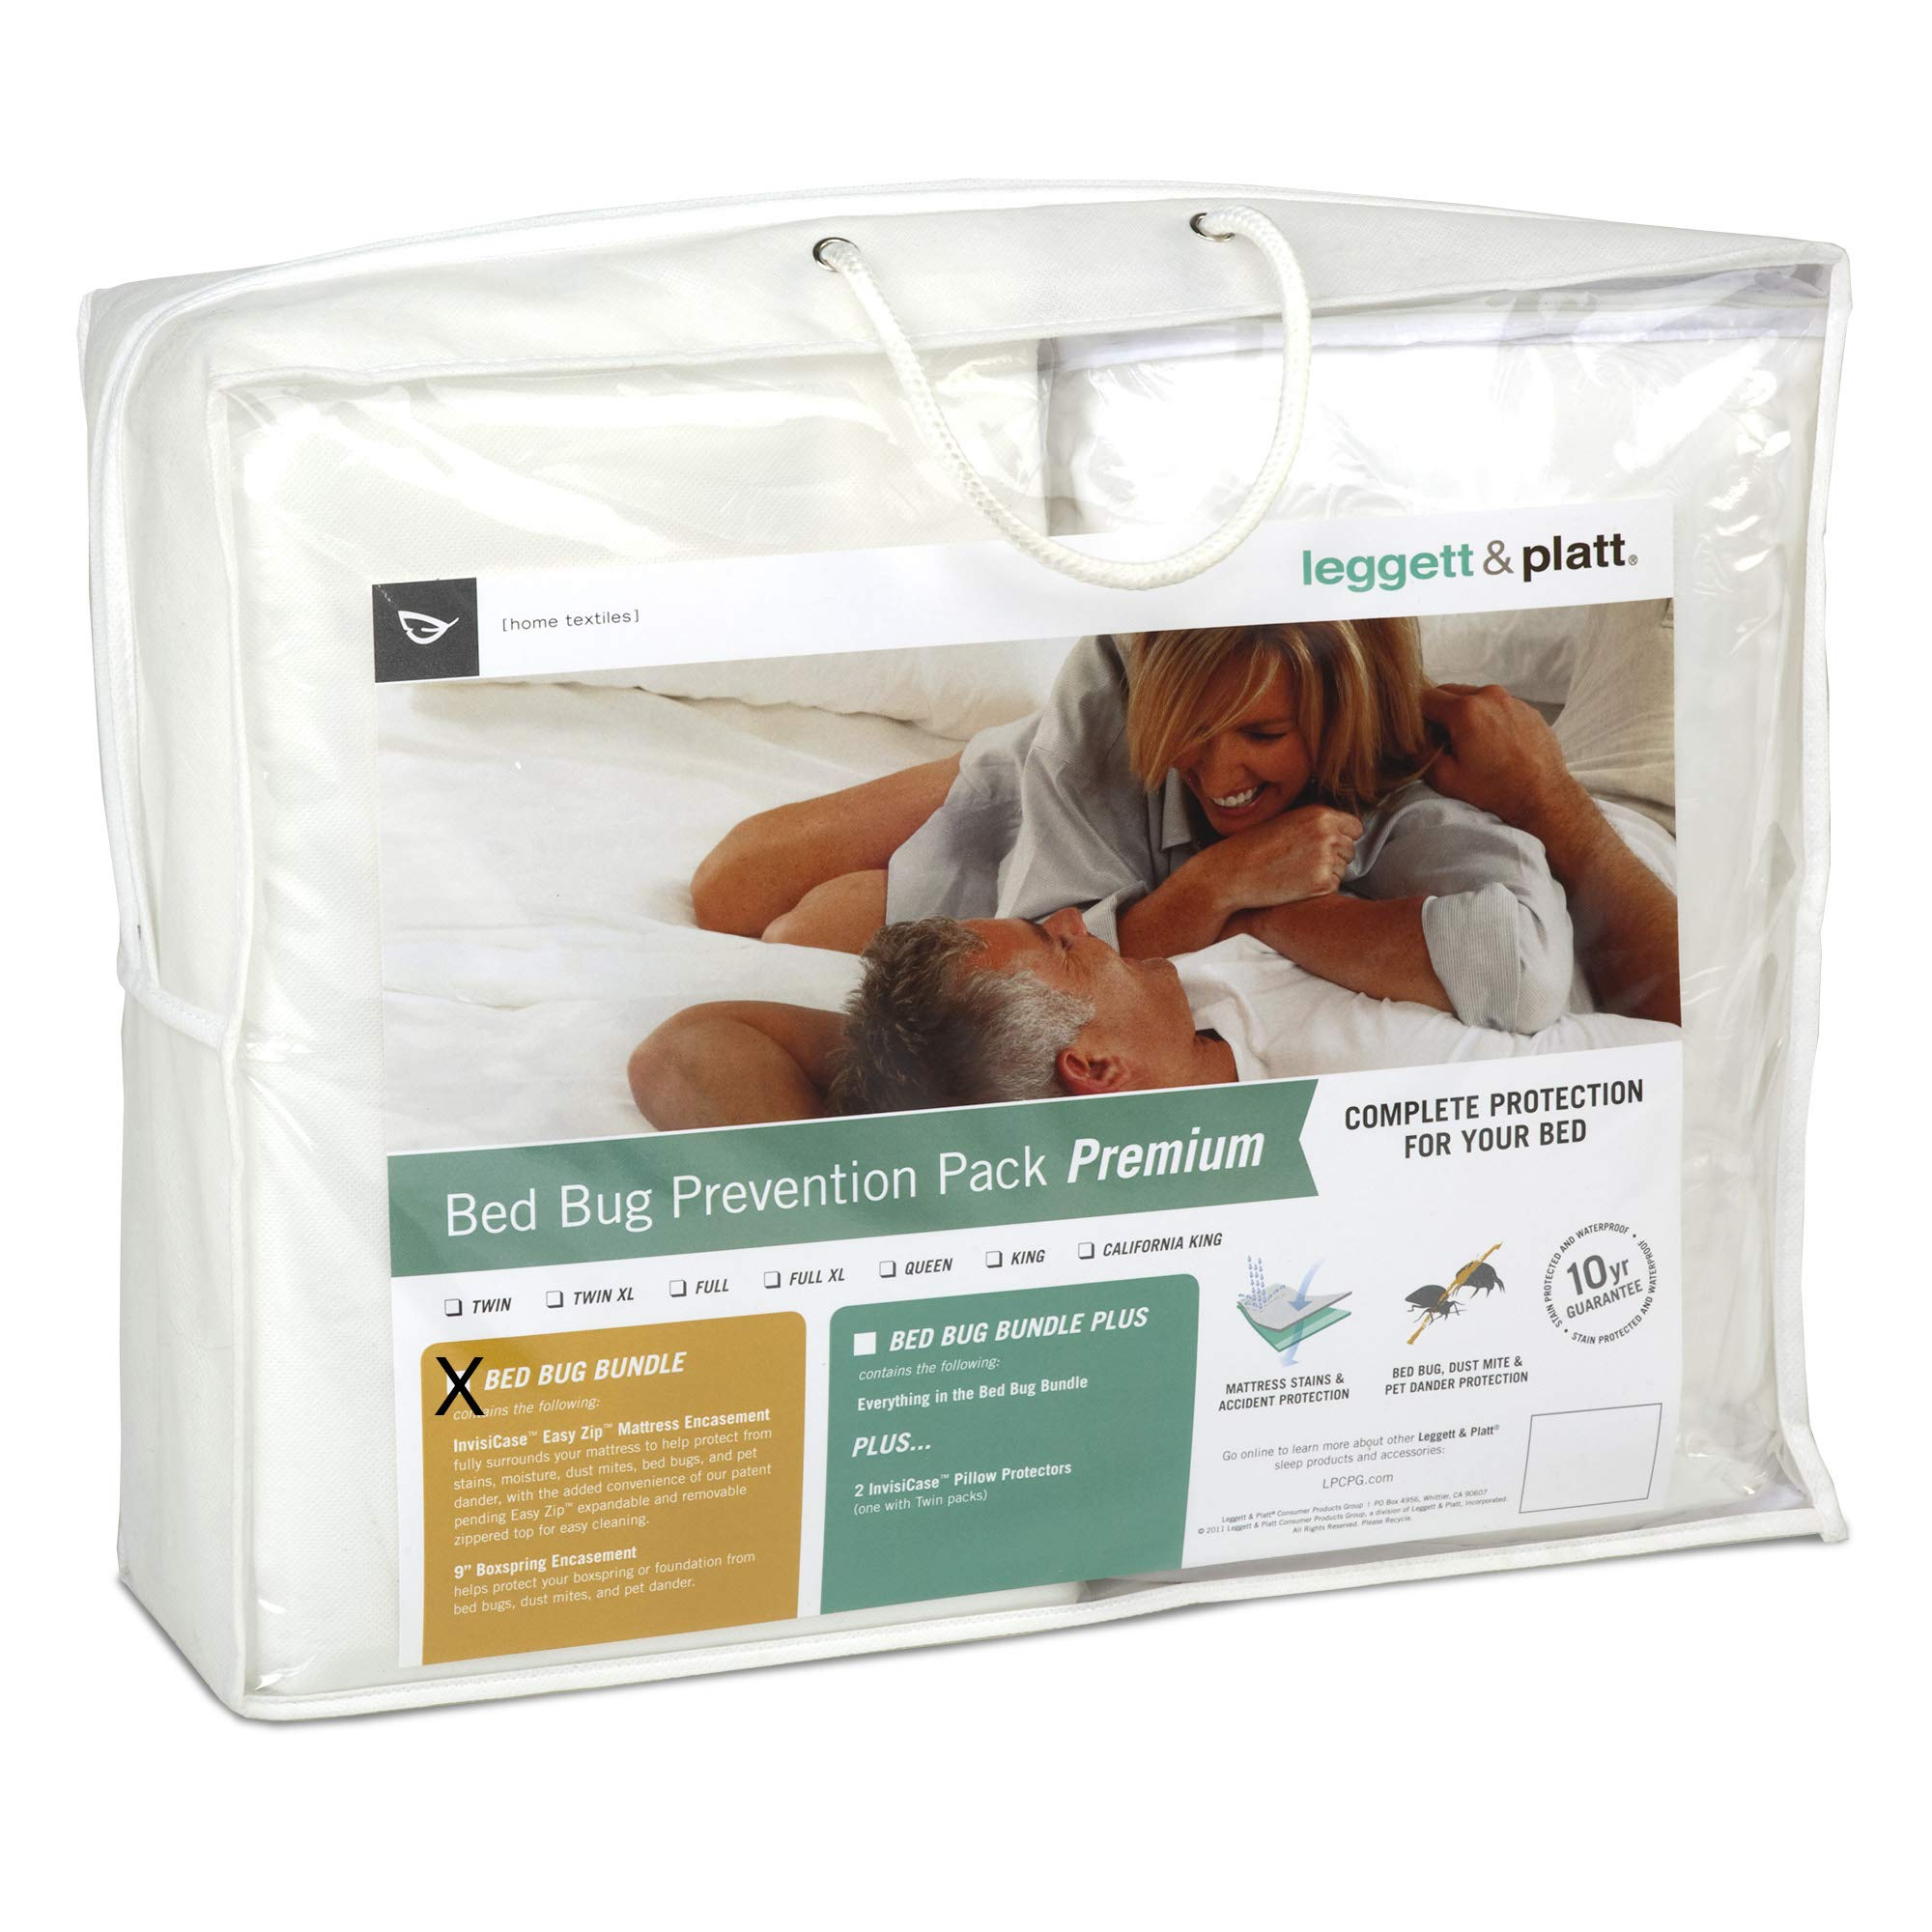 Leggett & Platt Sleep Calm 2-Piece Premium Bed Bug Prevention Pack with Easy Zip Mattress and Zippered Box Spring Encasement, Queen